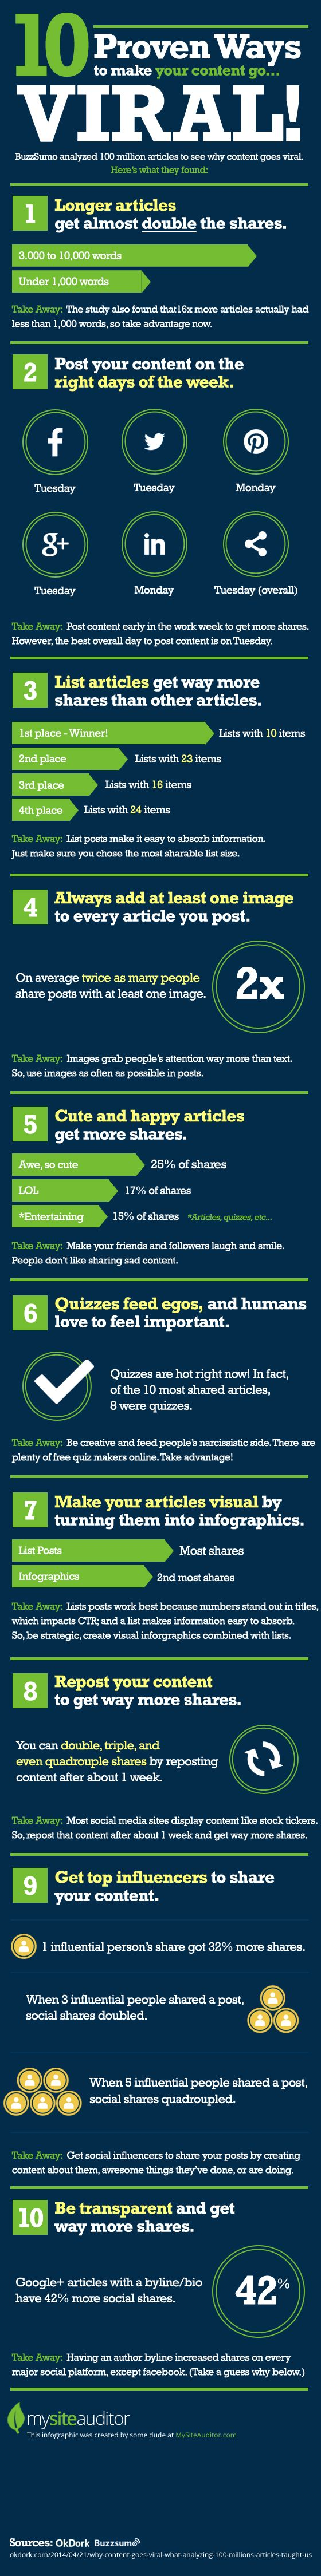 10 Proven Ways to Make Your Content Go #Viral [ #Infographic ]